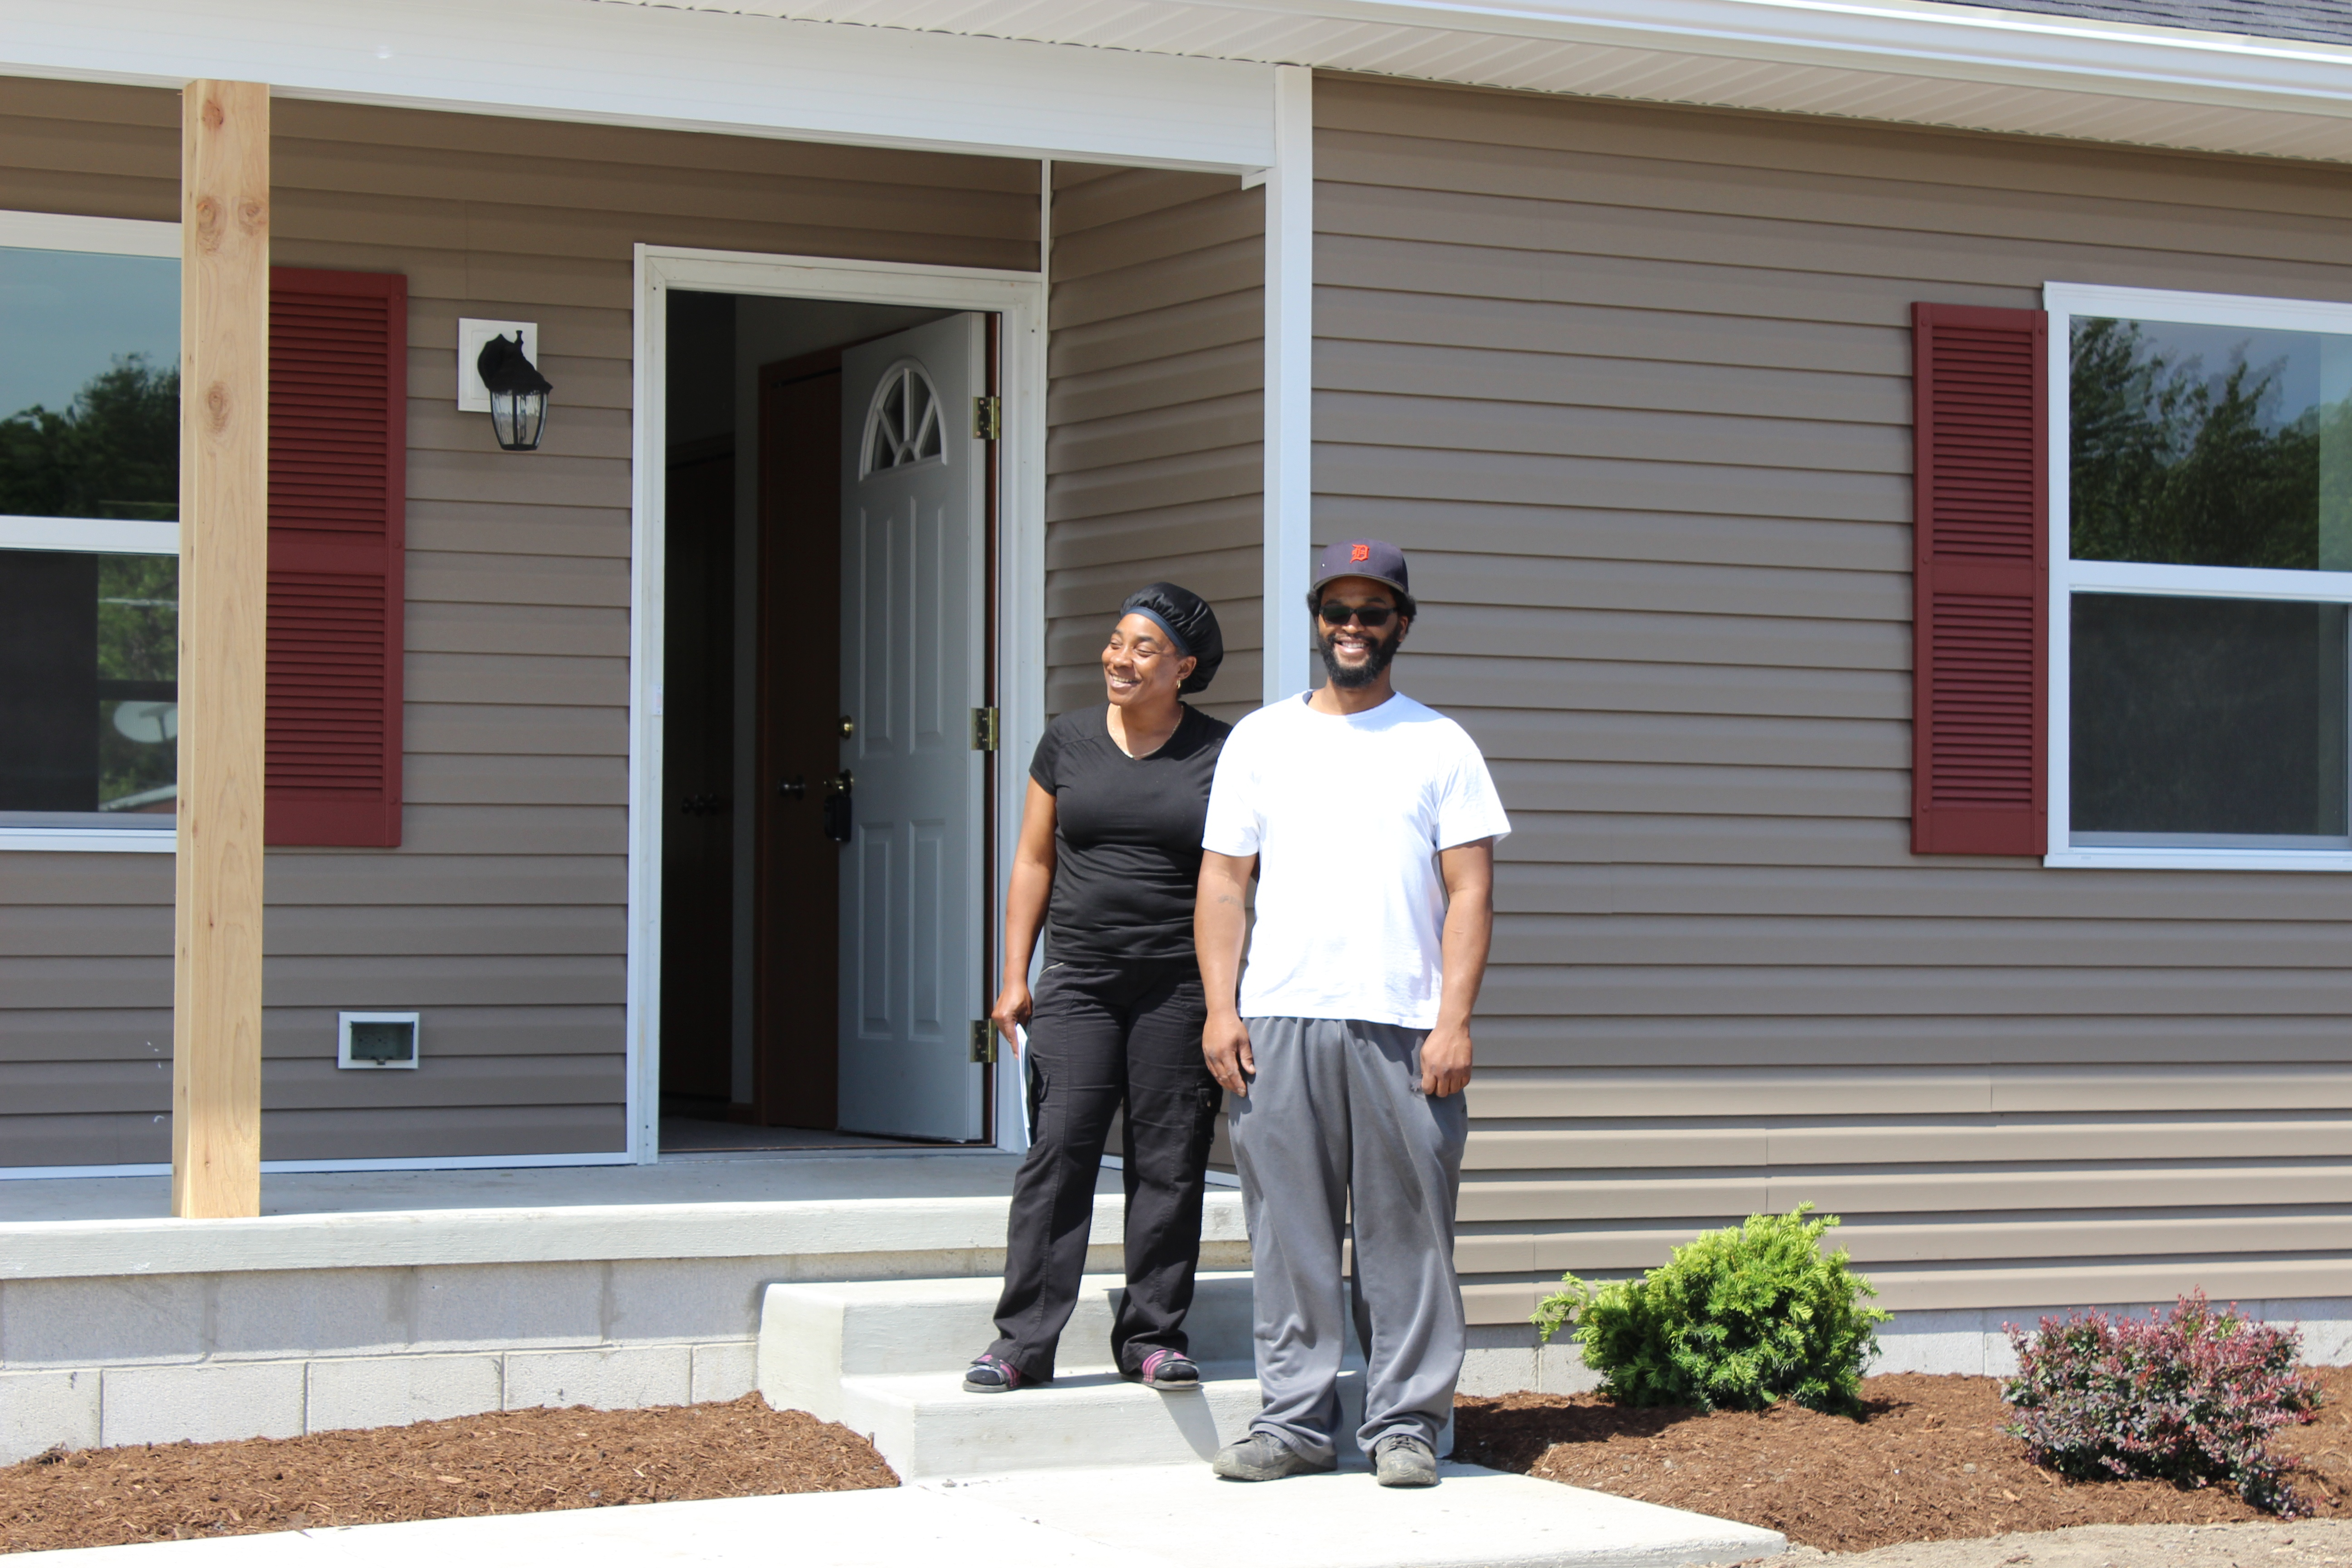 Habitat for Humanity Love and Adam Home